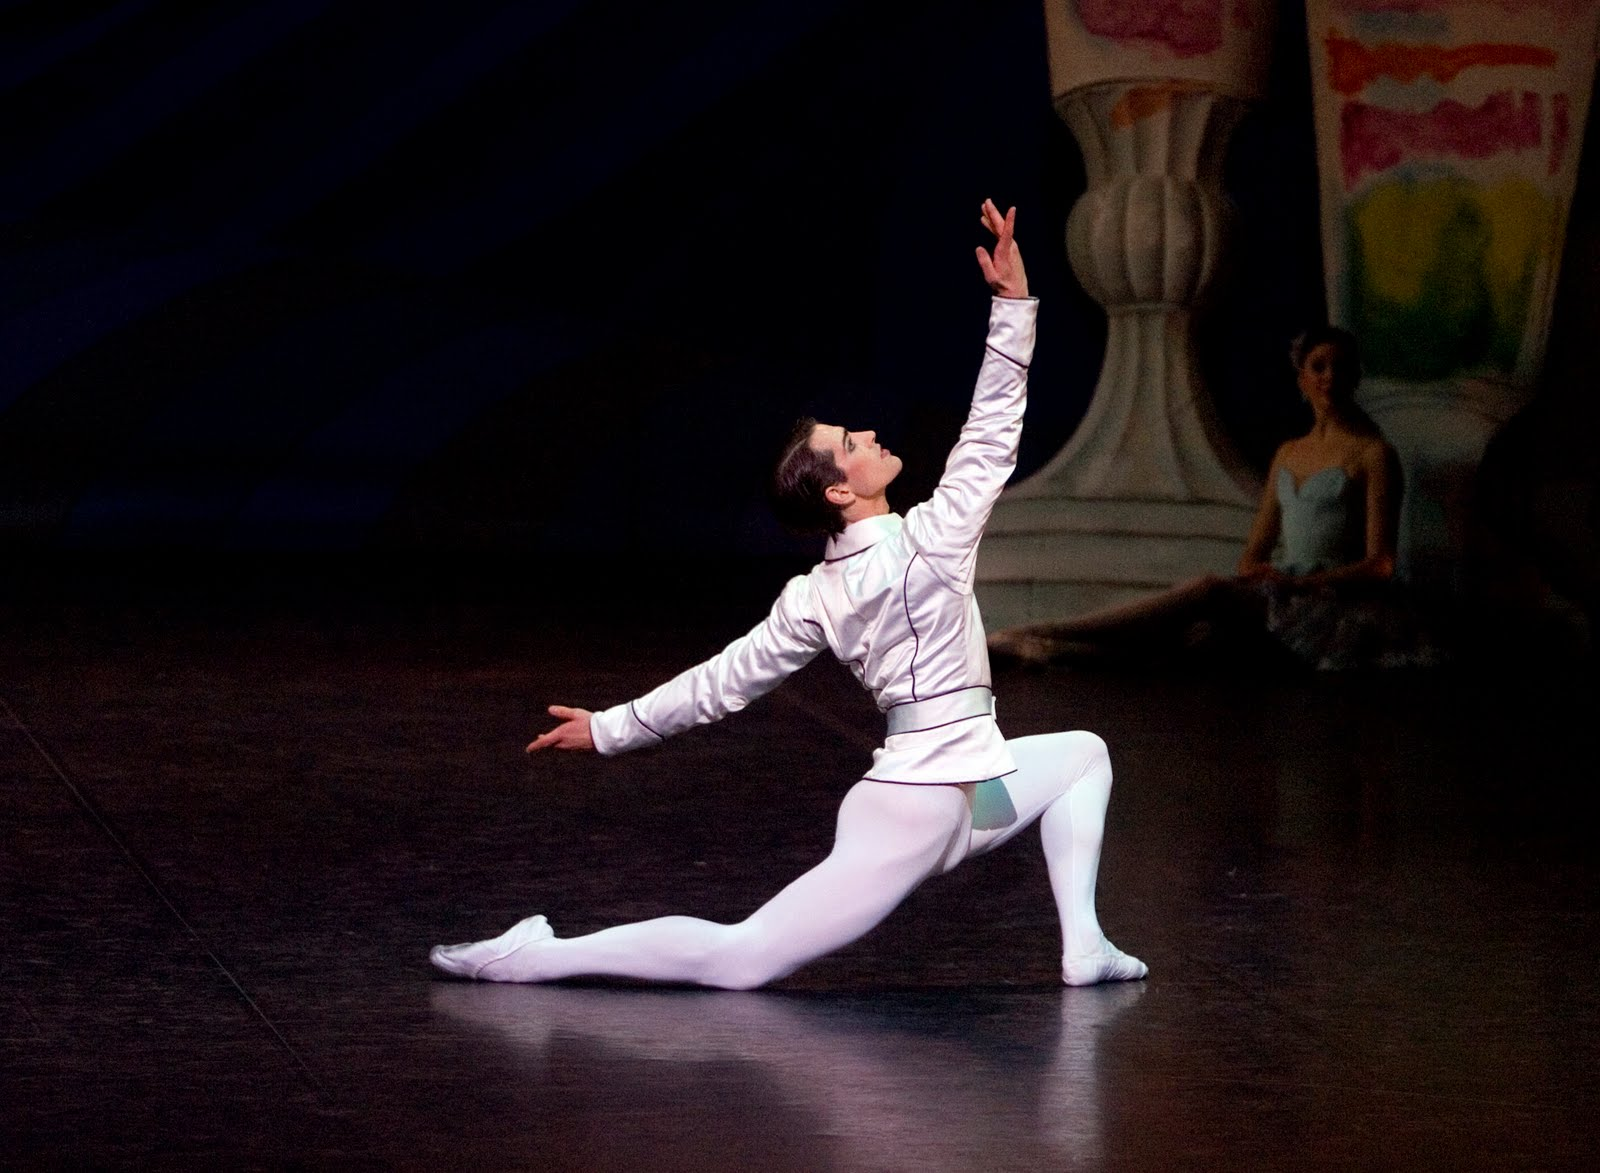 James Forbat as The Prince in The Nutcracker